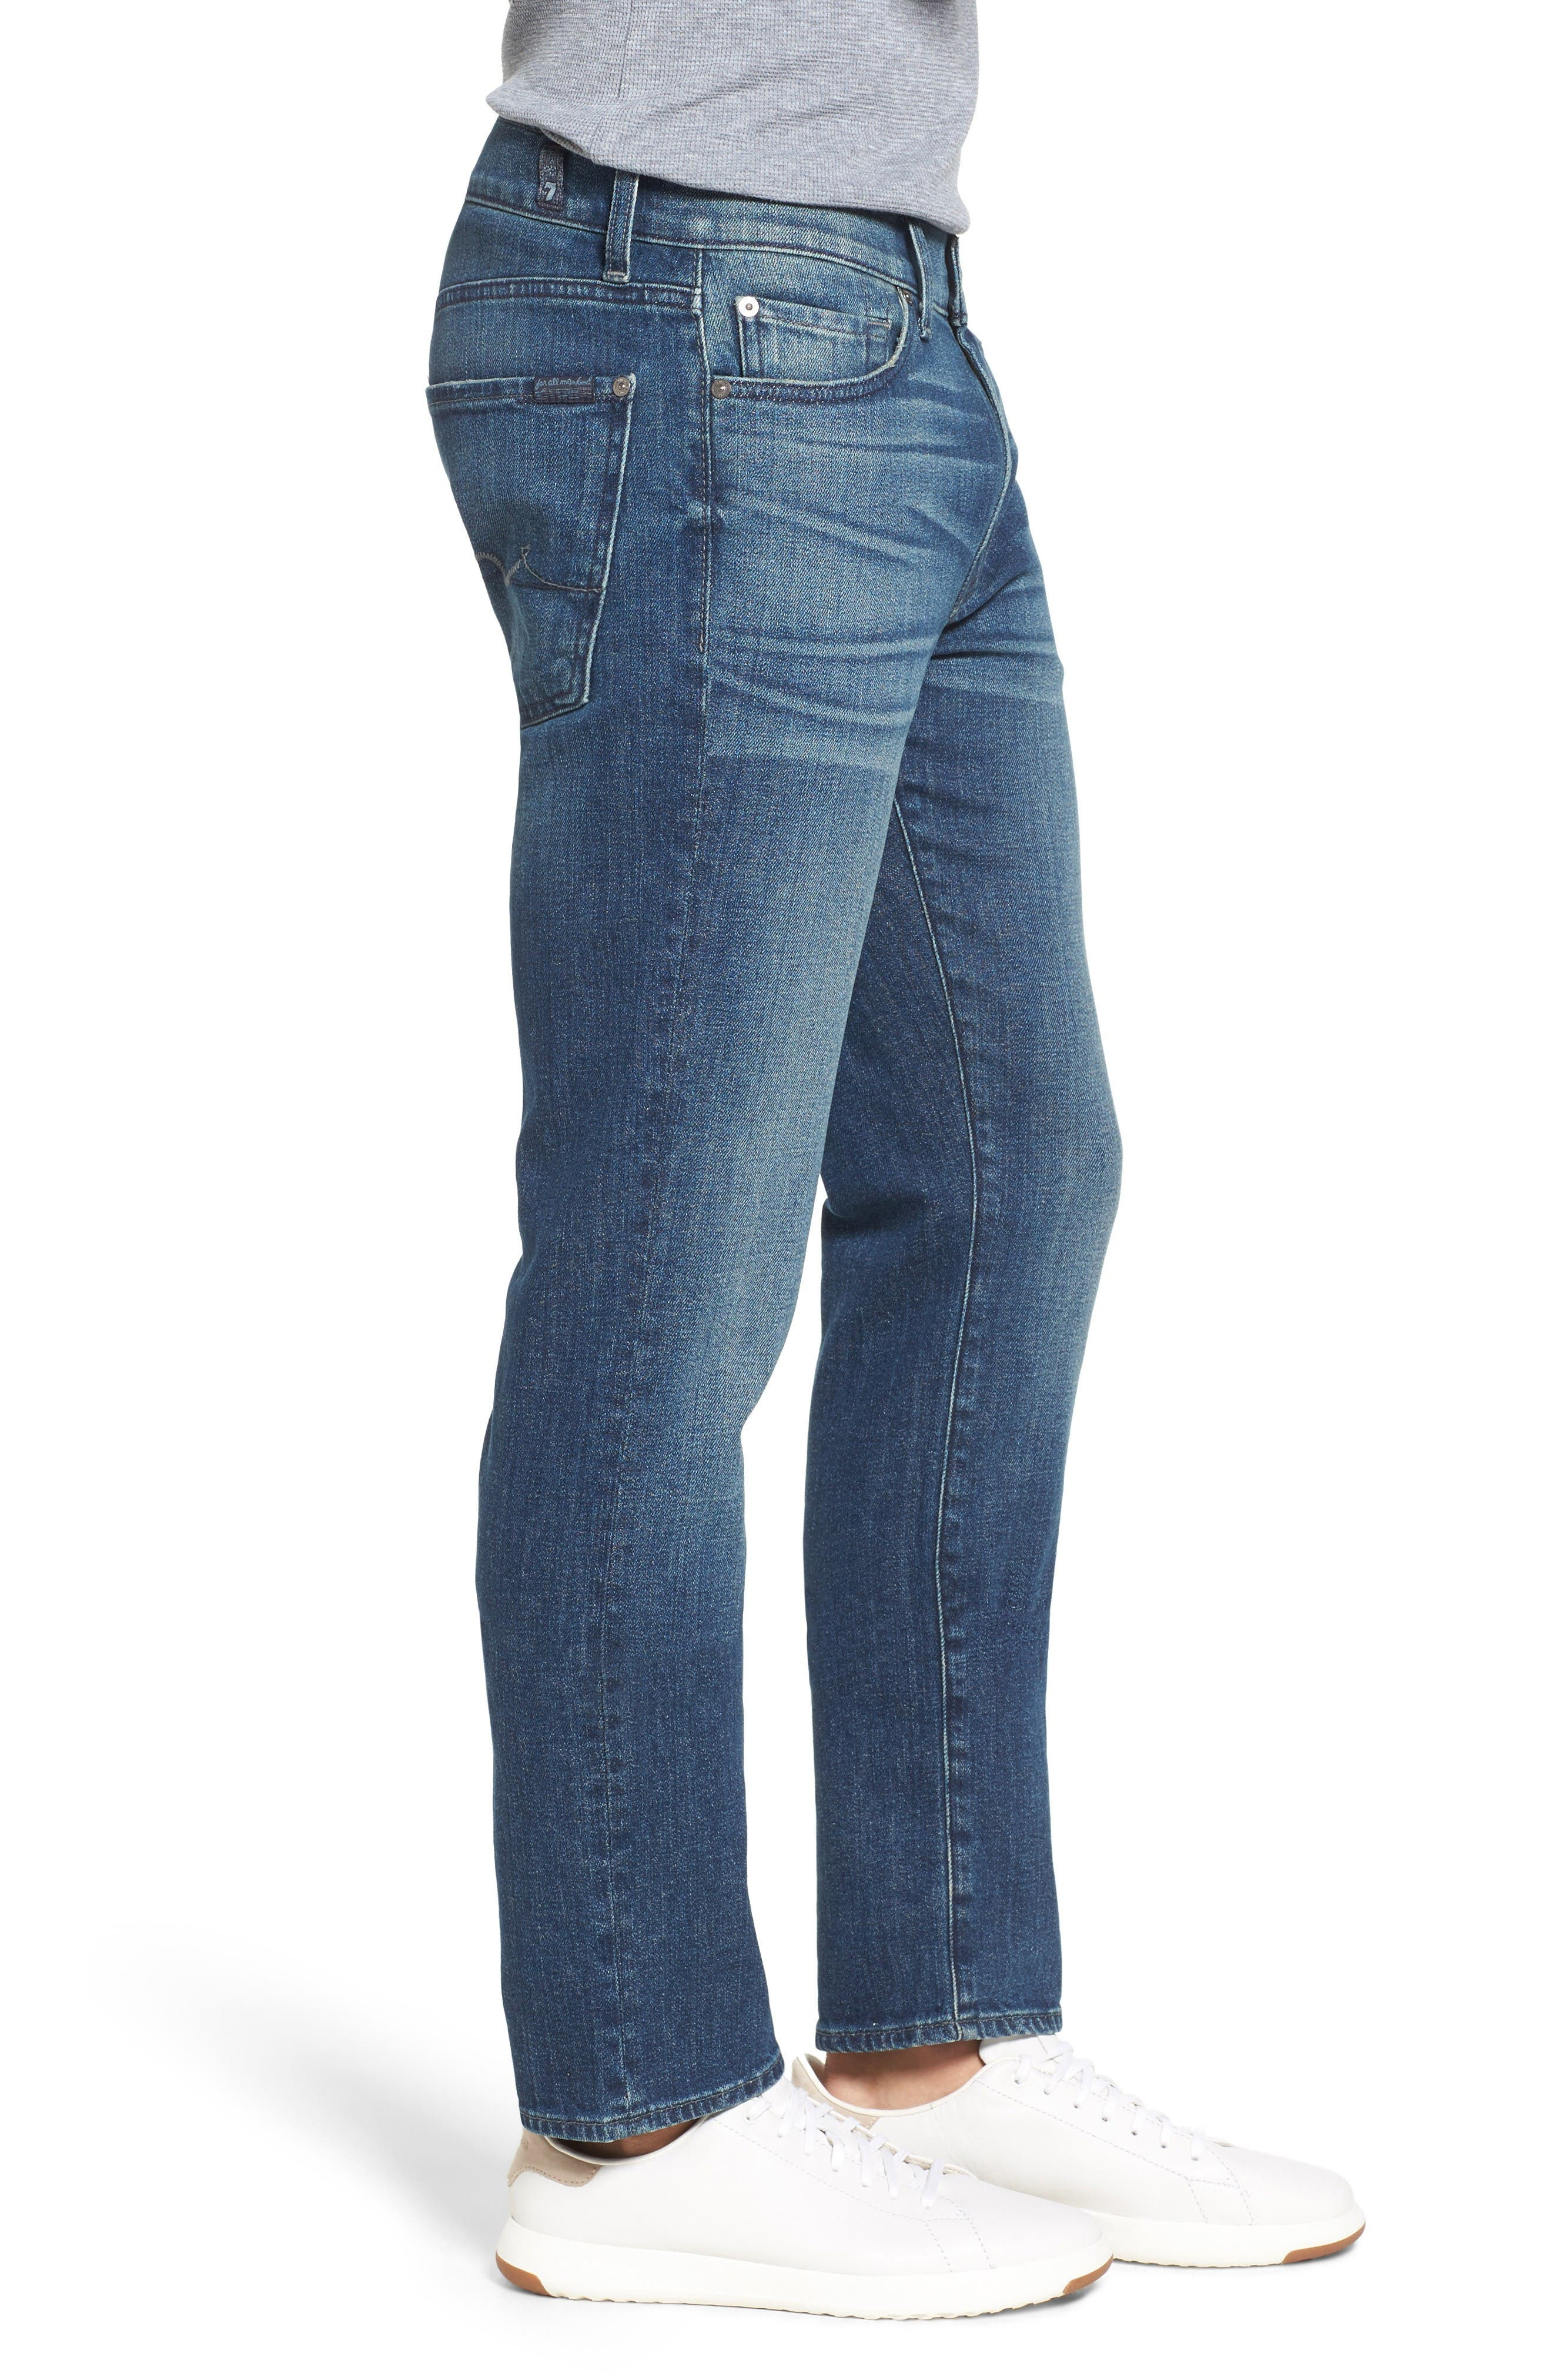 7 For All Mankind Slimmy Slim Fit Jeans,                             Alternate thumbnail 3, color,                             Calgary Blue